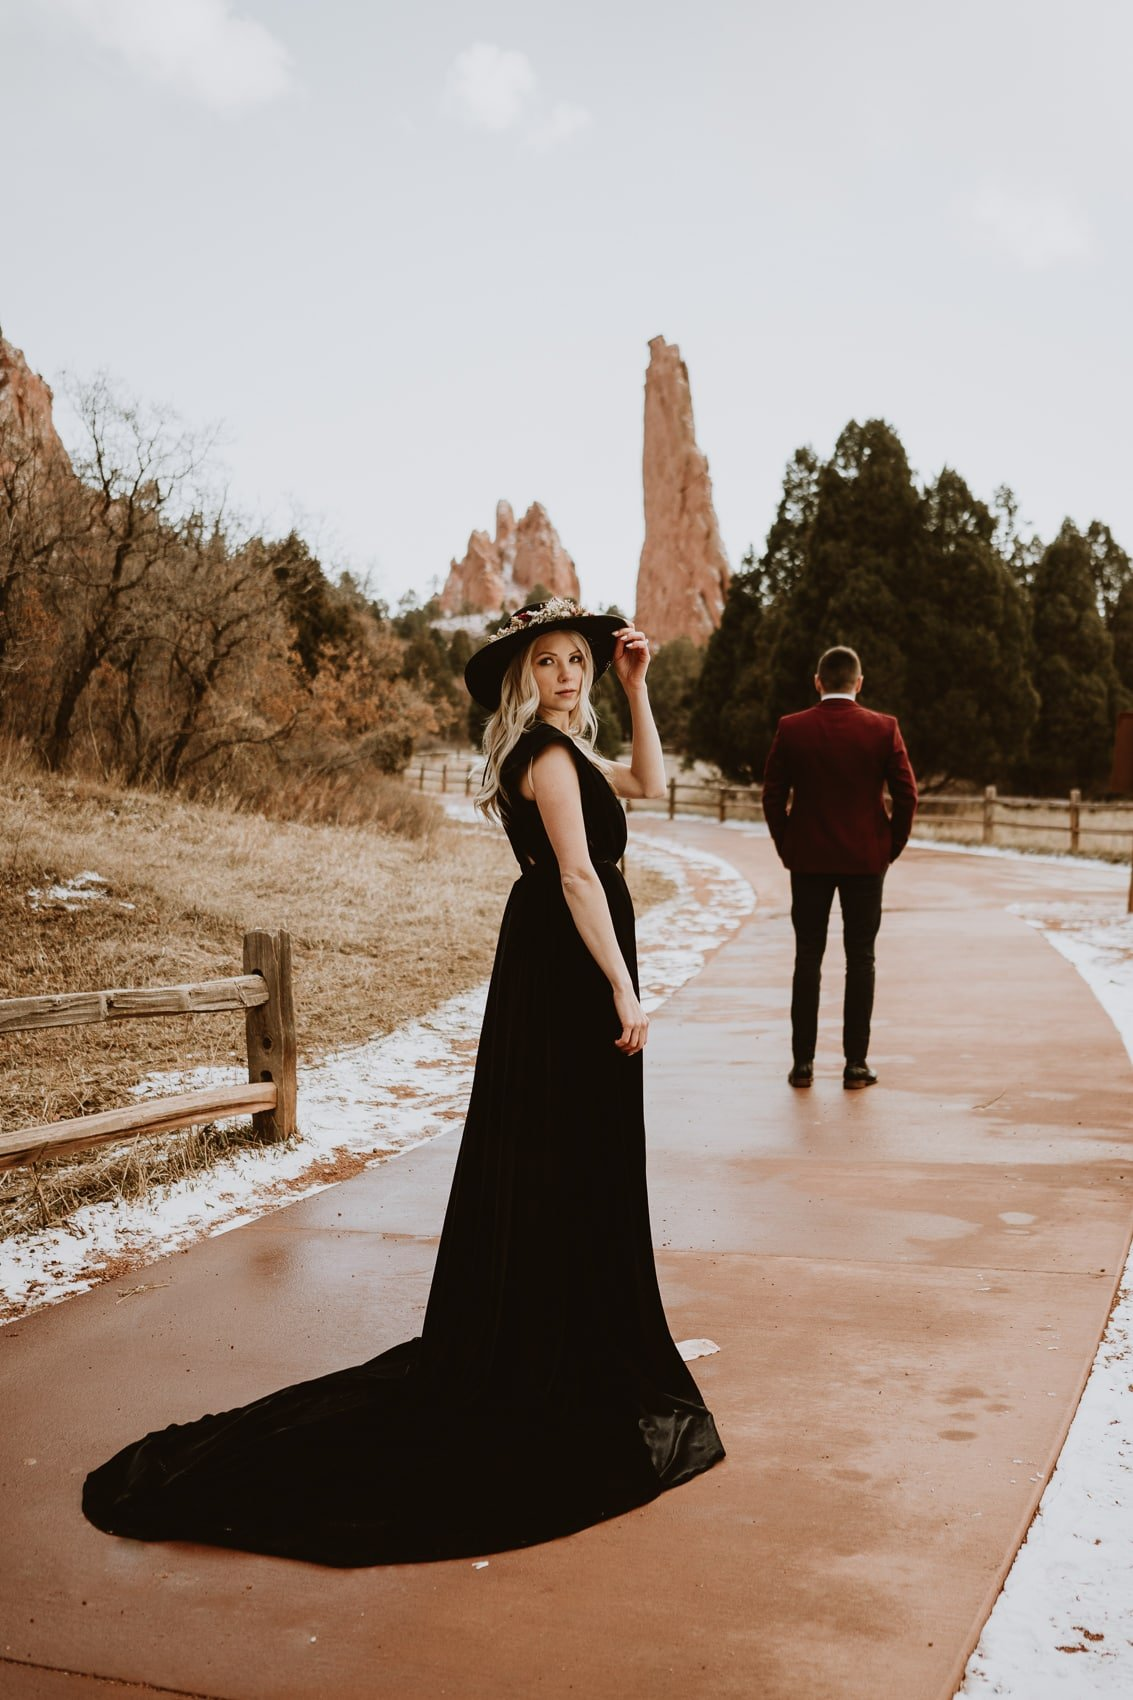 Bride poses in black wedding dress during the first look for Garden of the Gods wedding photos